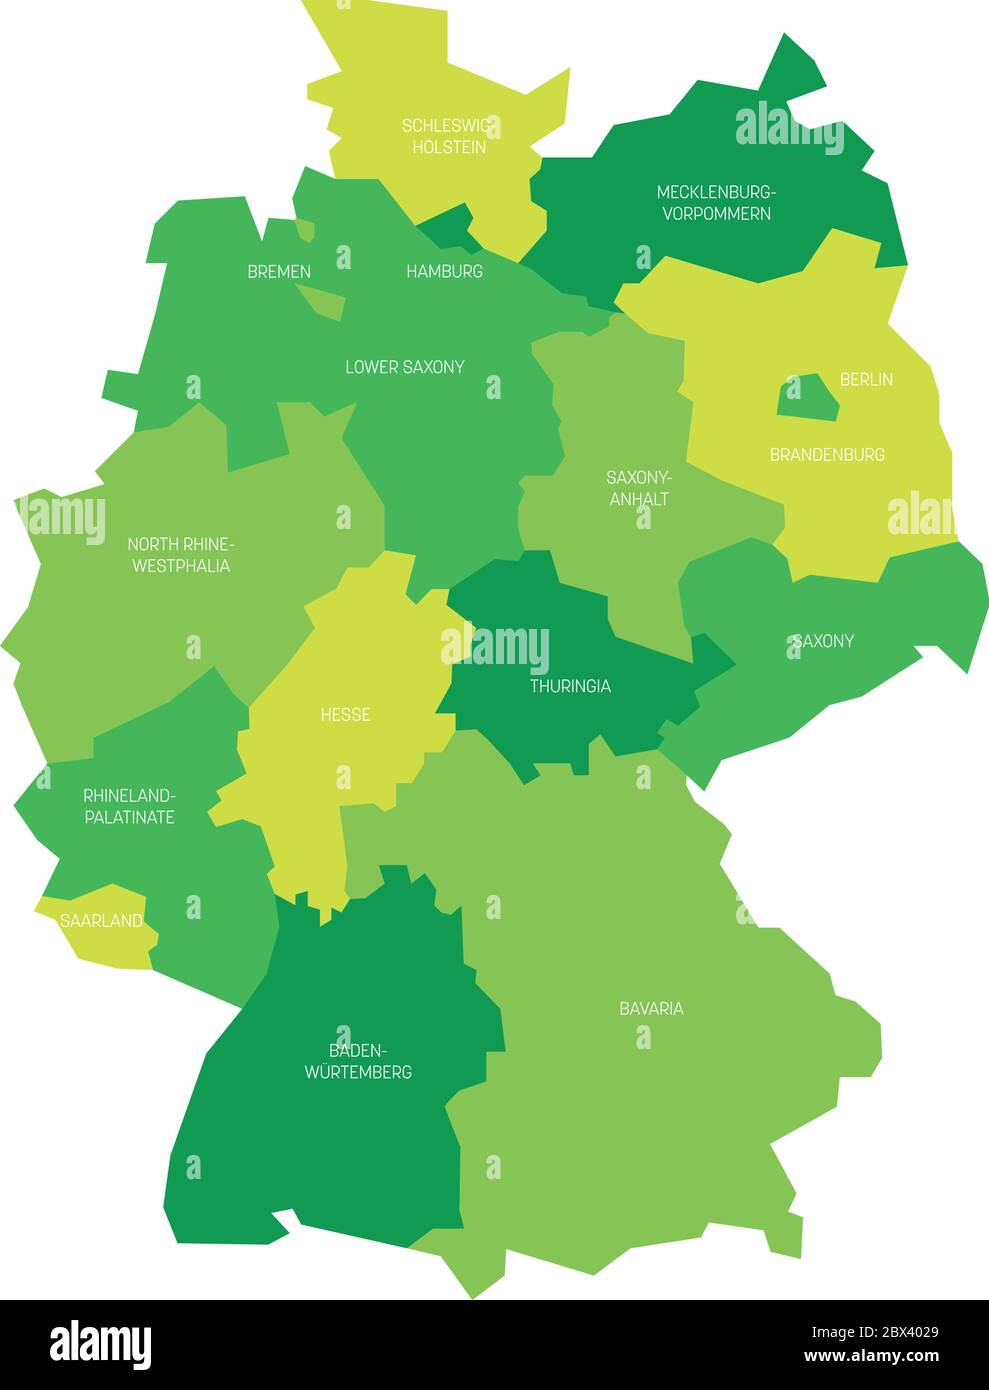 Map Of Germany Devided To 13 Federal States And 3 City States Berlin Bremen And Hamburg Europe Simple Flat Vector Map In Shades Of Green Stock Vector Image Art Alamy